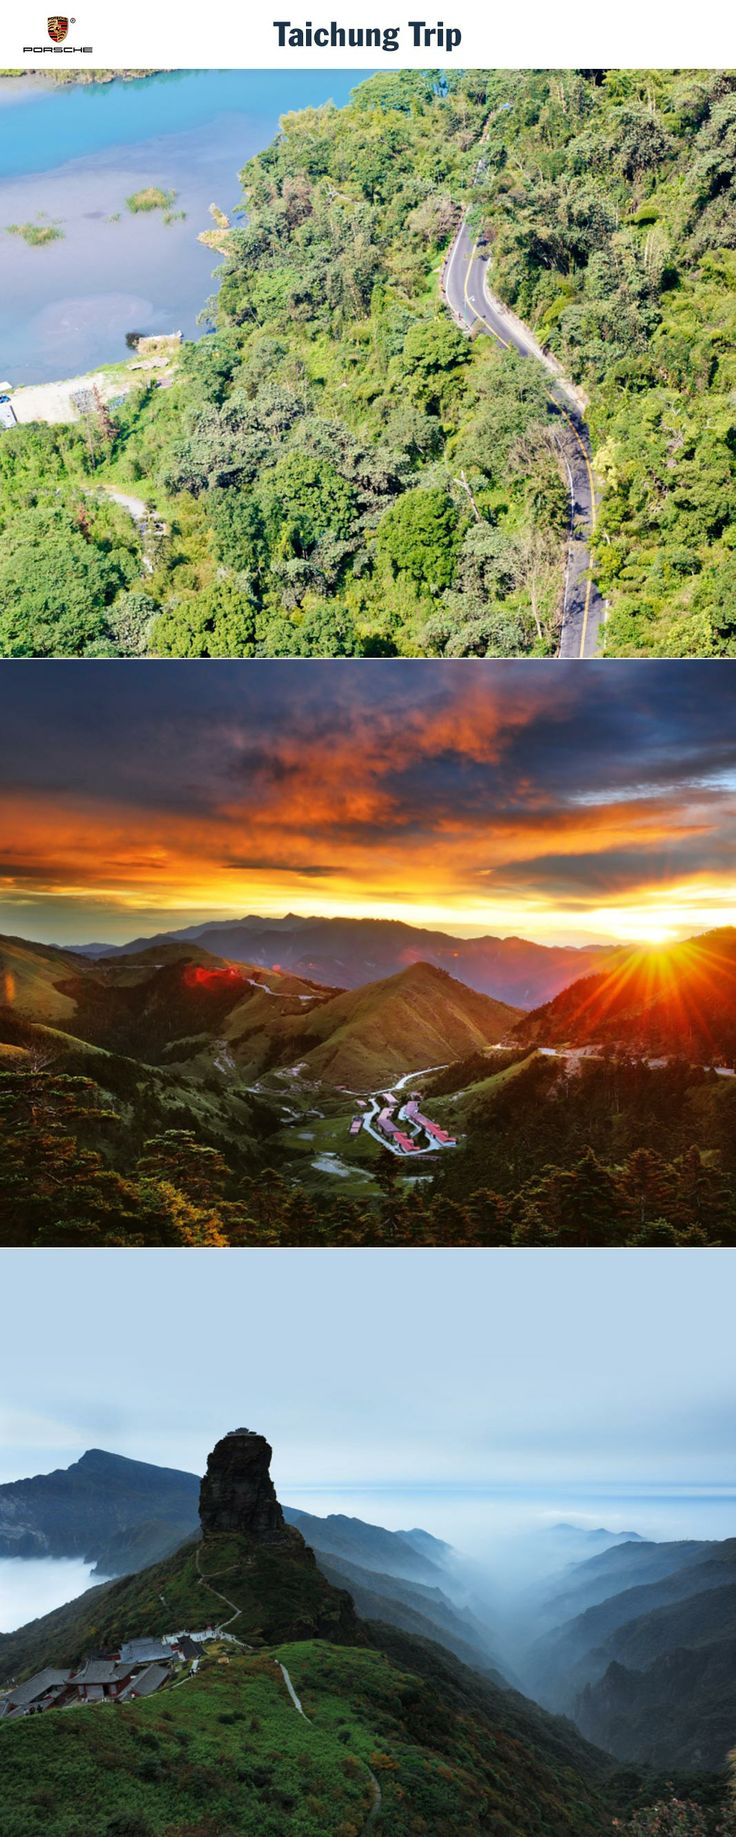 Taichung Trip, Taiwan. From the metropolis to the summit and back again. Route: Taichung - Sun Moon Lake - Hehuanshan Mountain - Taichung. Driving time: Approx. 6.5 hours. Distance: Approx. 275 km (171 miles). Recommended travel time: March - May and September - November.   Learn more: http://link.porsche.com/gts/taiwan